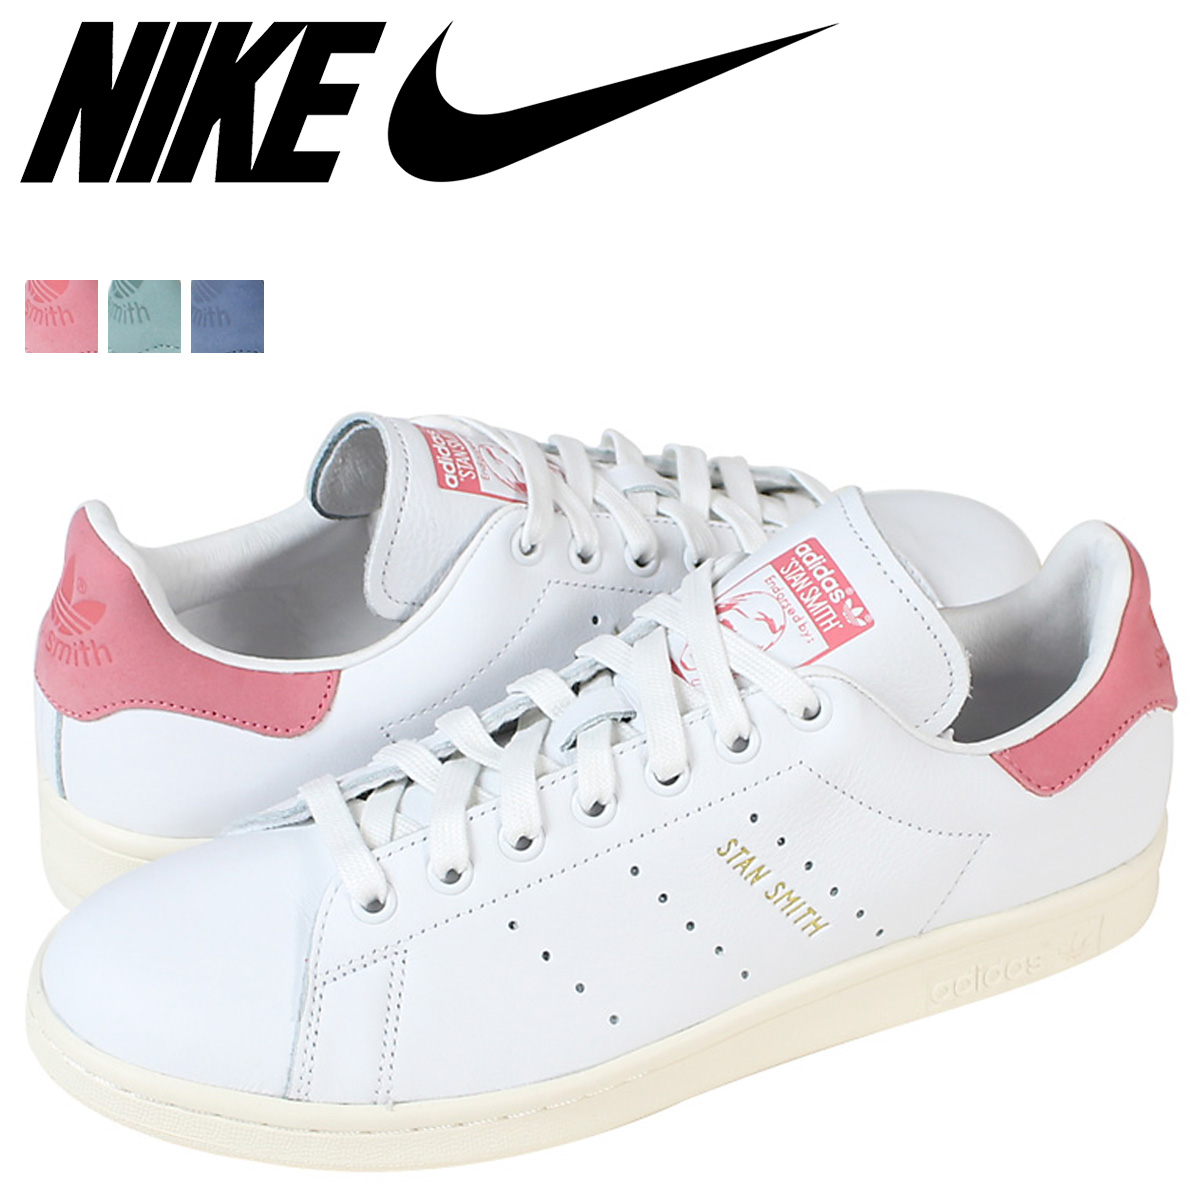 quality design best sell most popular adidas Stan Smith Adidas Originals sneakers STAN SMITH men S80024 S80025  S80026 shoes white originals